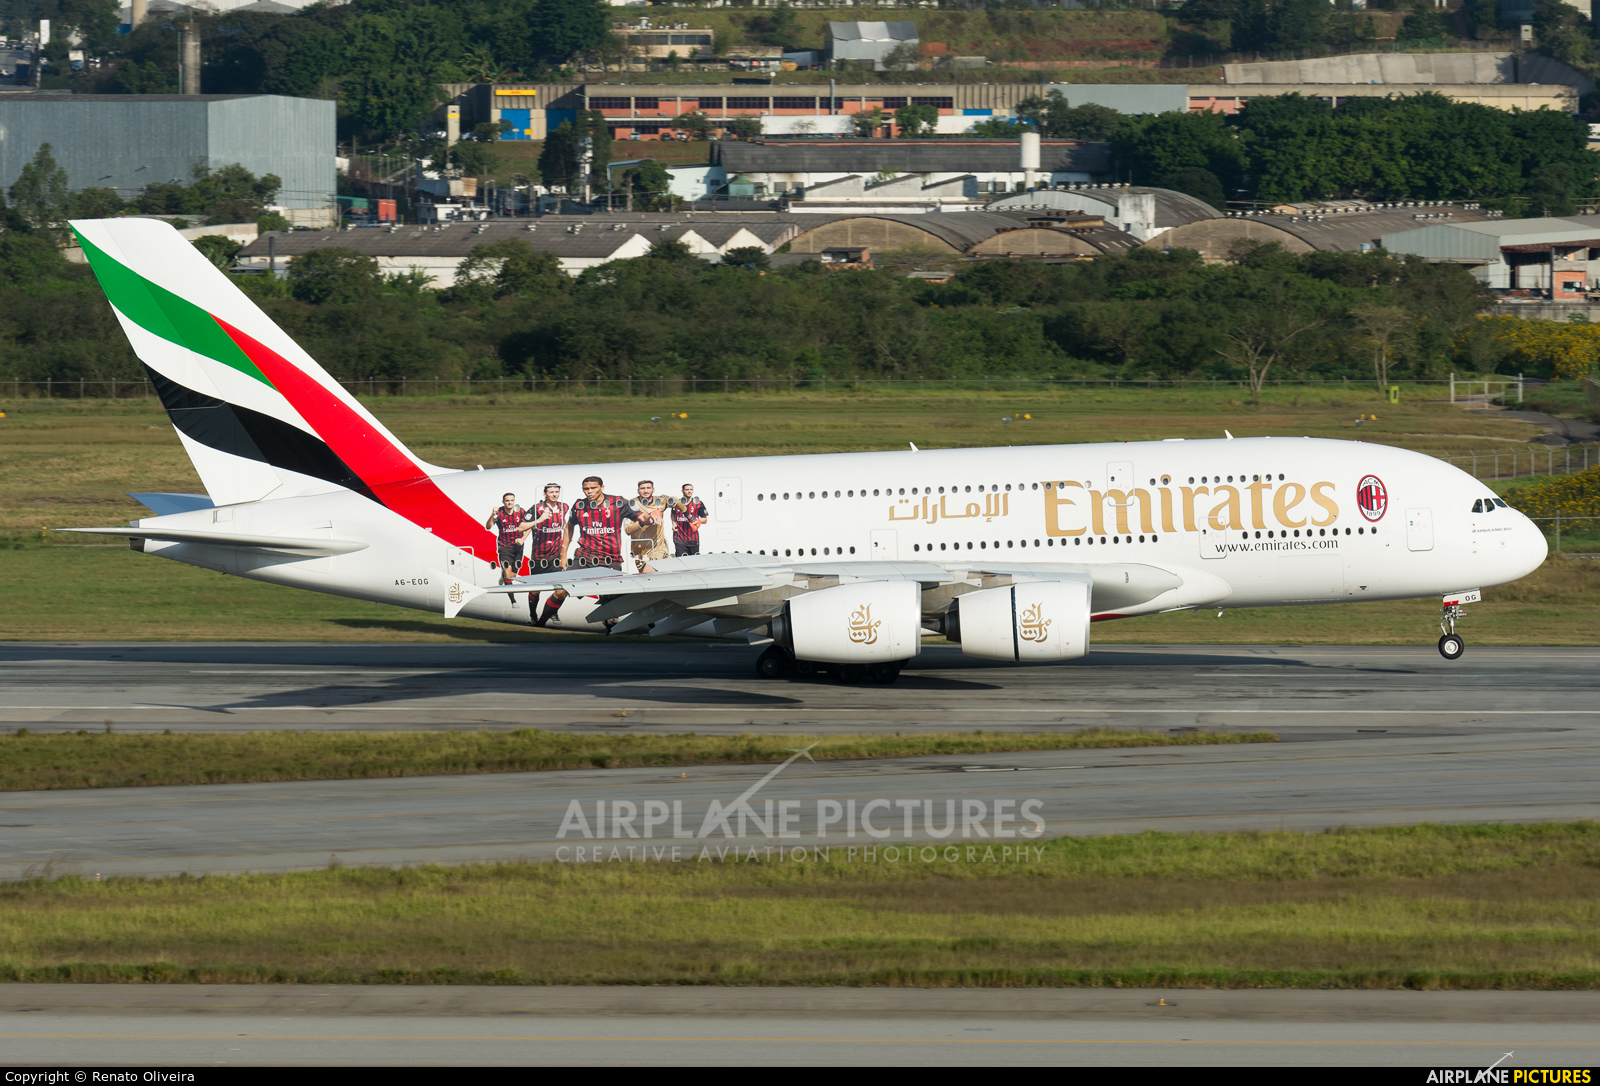 Emirates Airlines A6-EOG aircraft at São Paulo - Guarulhos